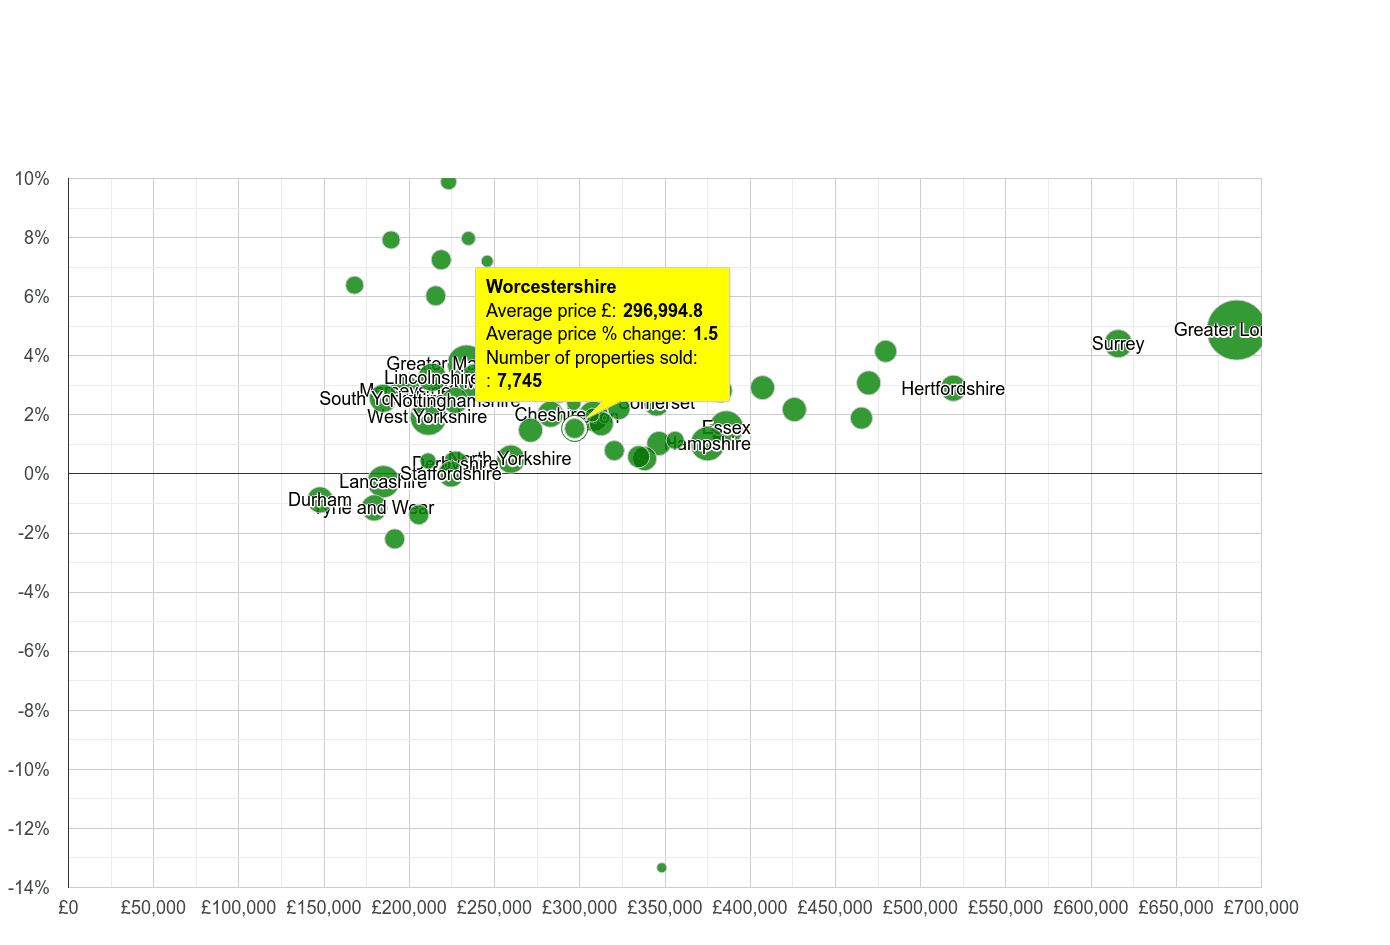 Worcestershire house prices compared to other counties